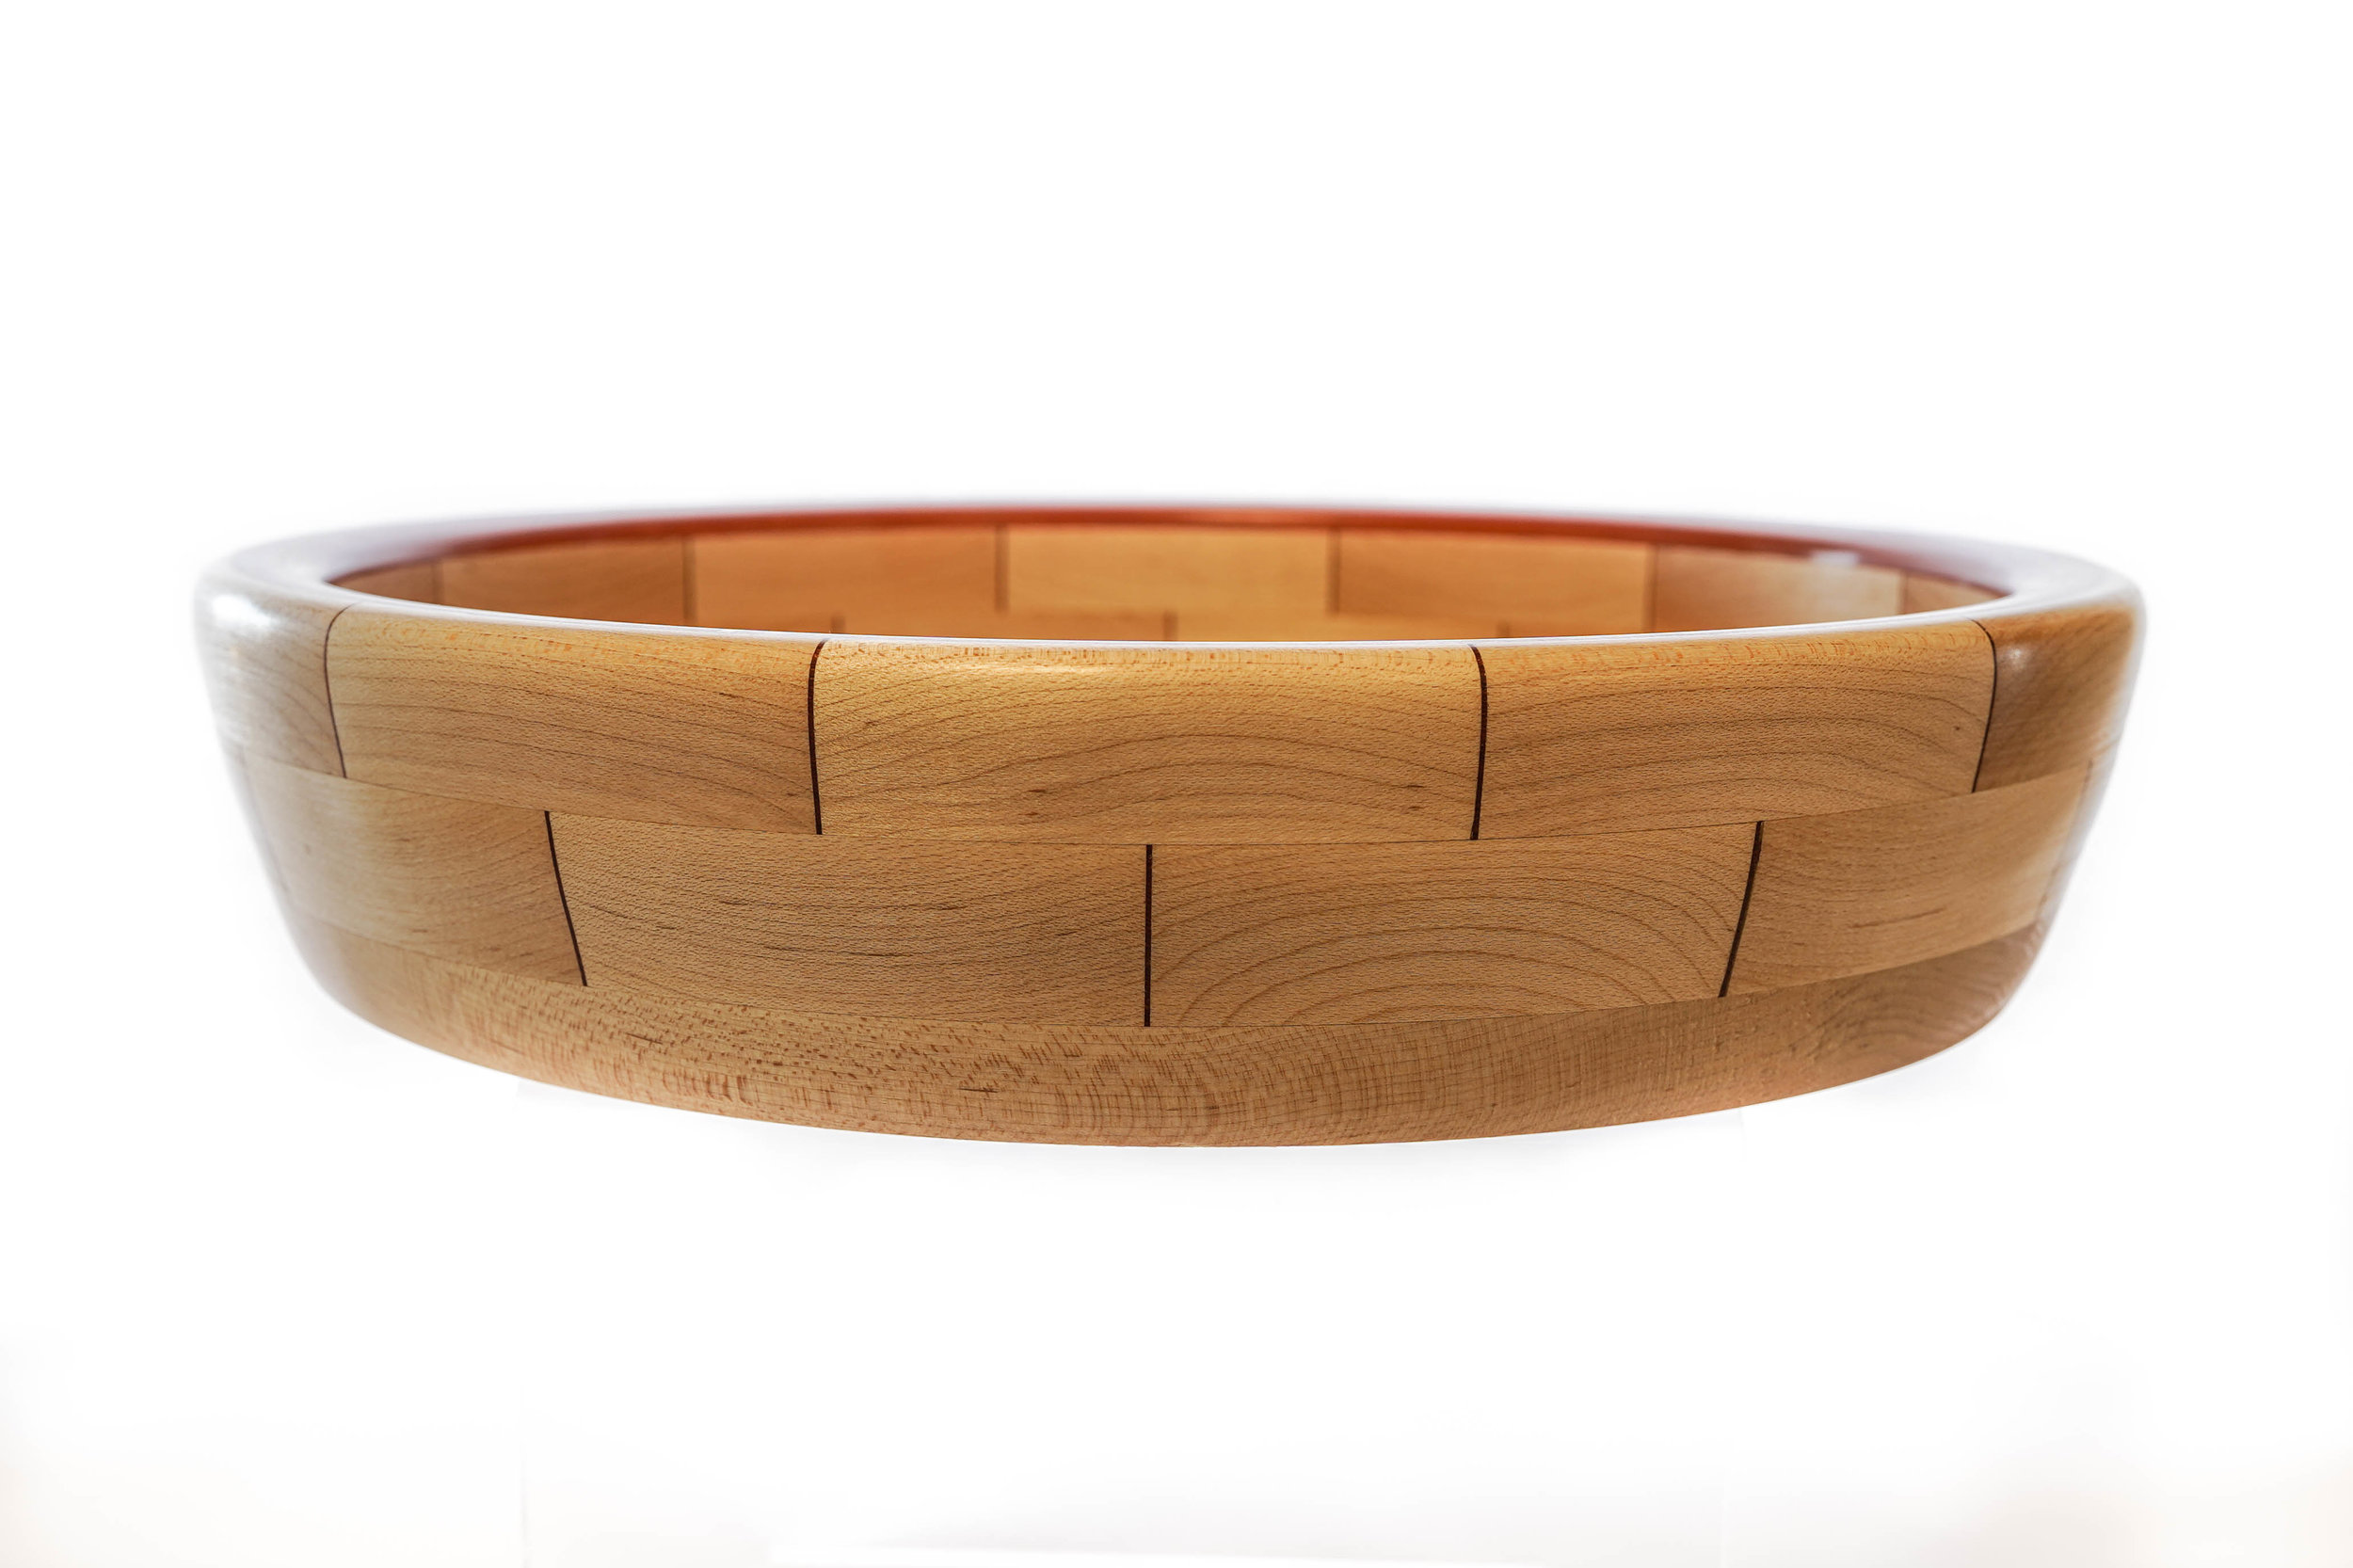 RJC Wood Creations - Resin Bowl Red (1).jpg